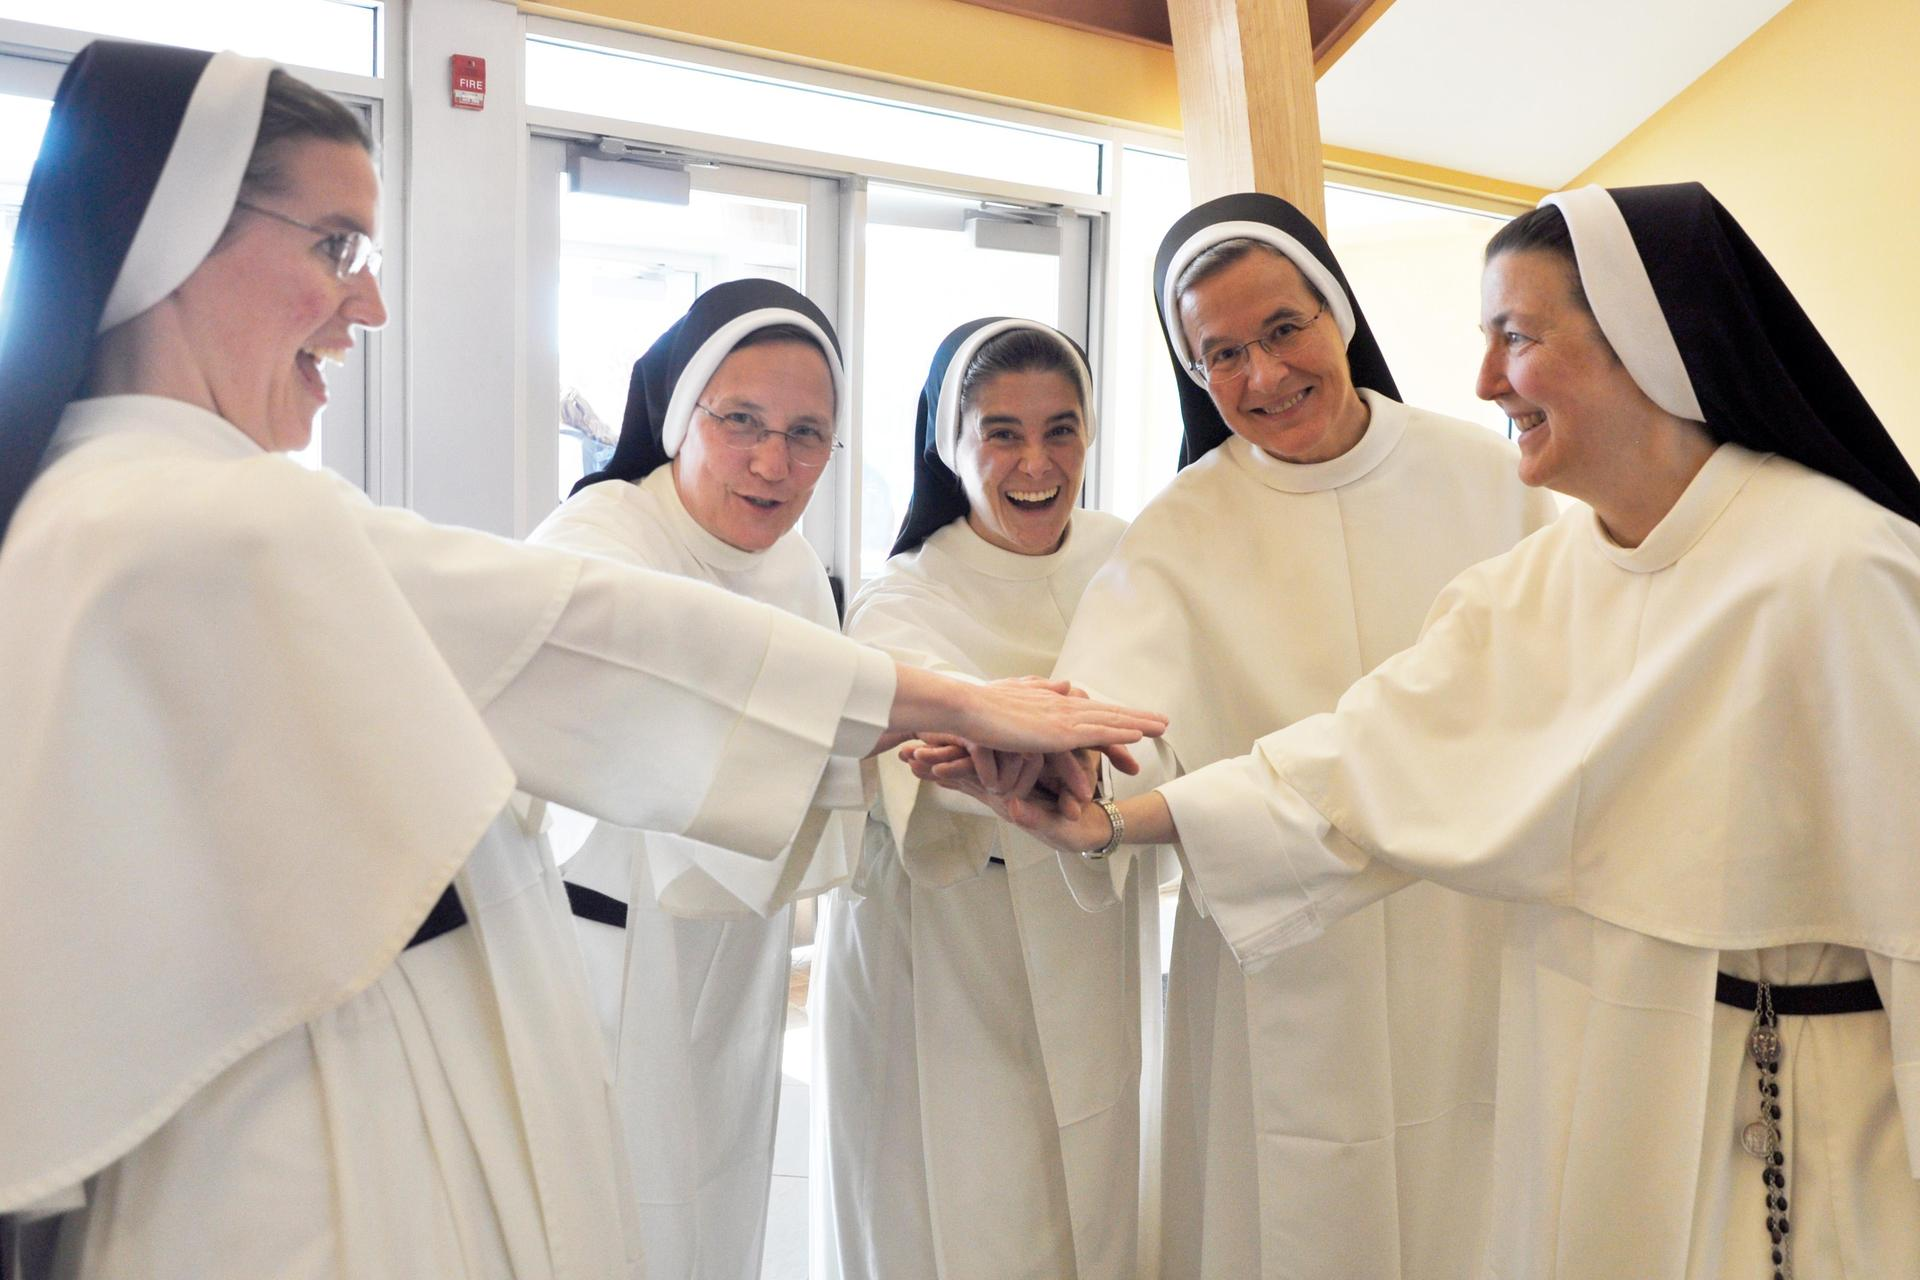 A group of Dominican sisters